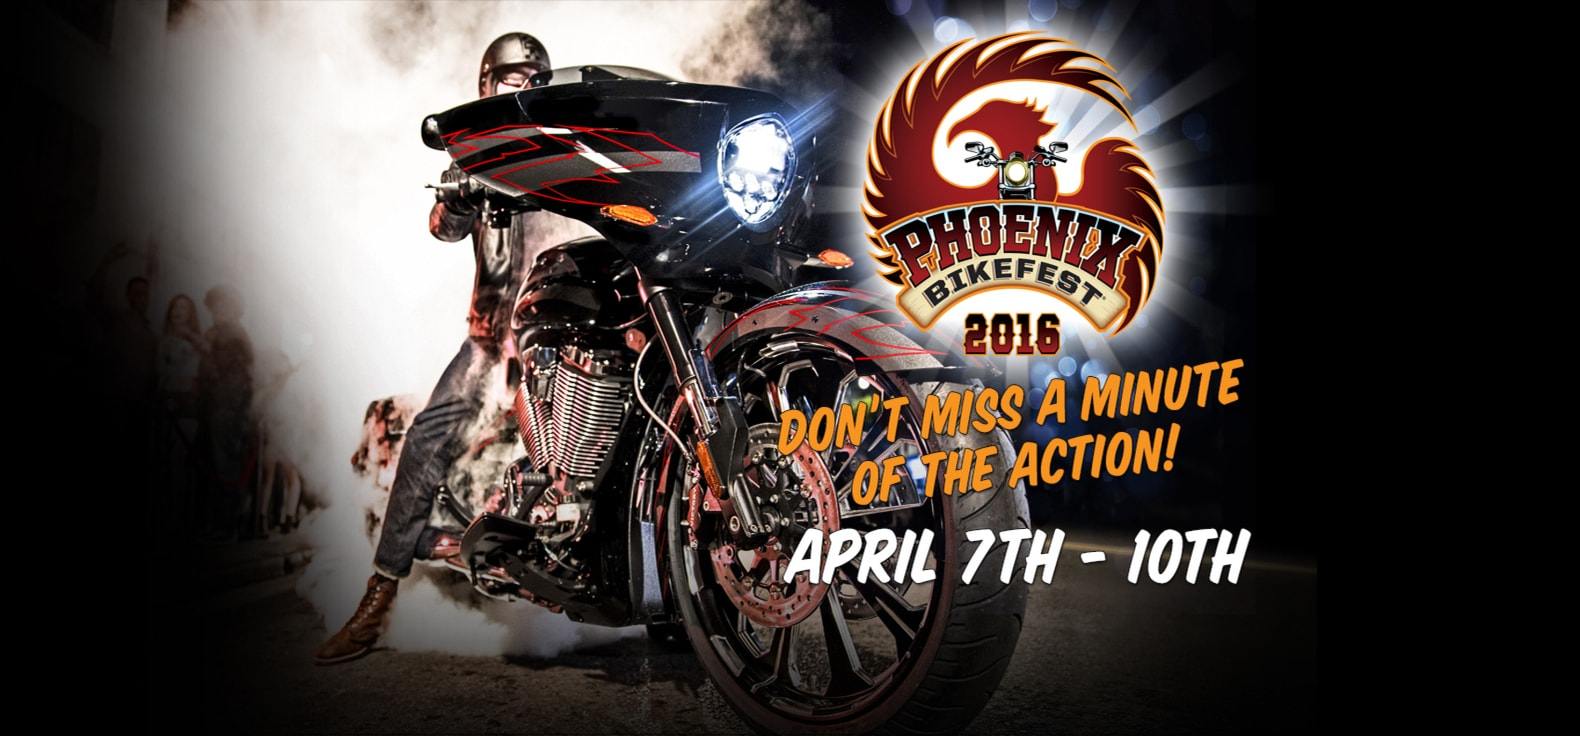 Phoenix Bikefest Is Back In The Valley April 7